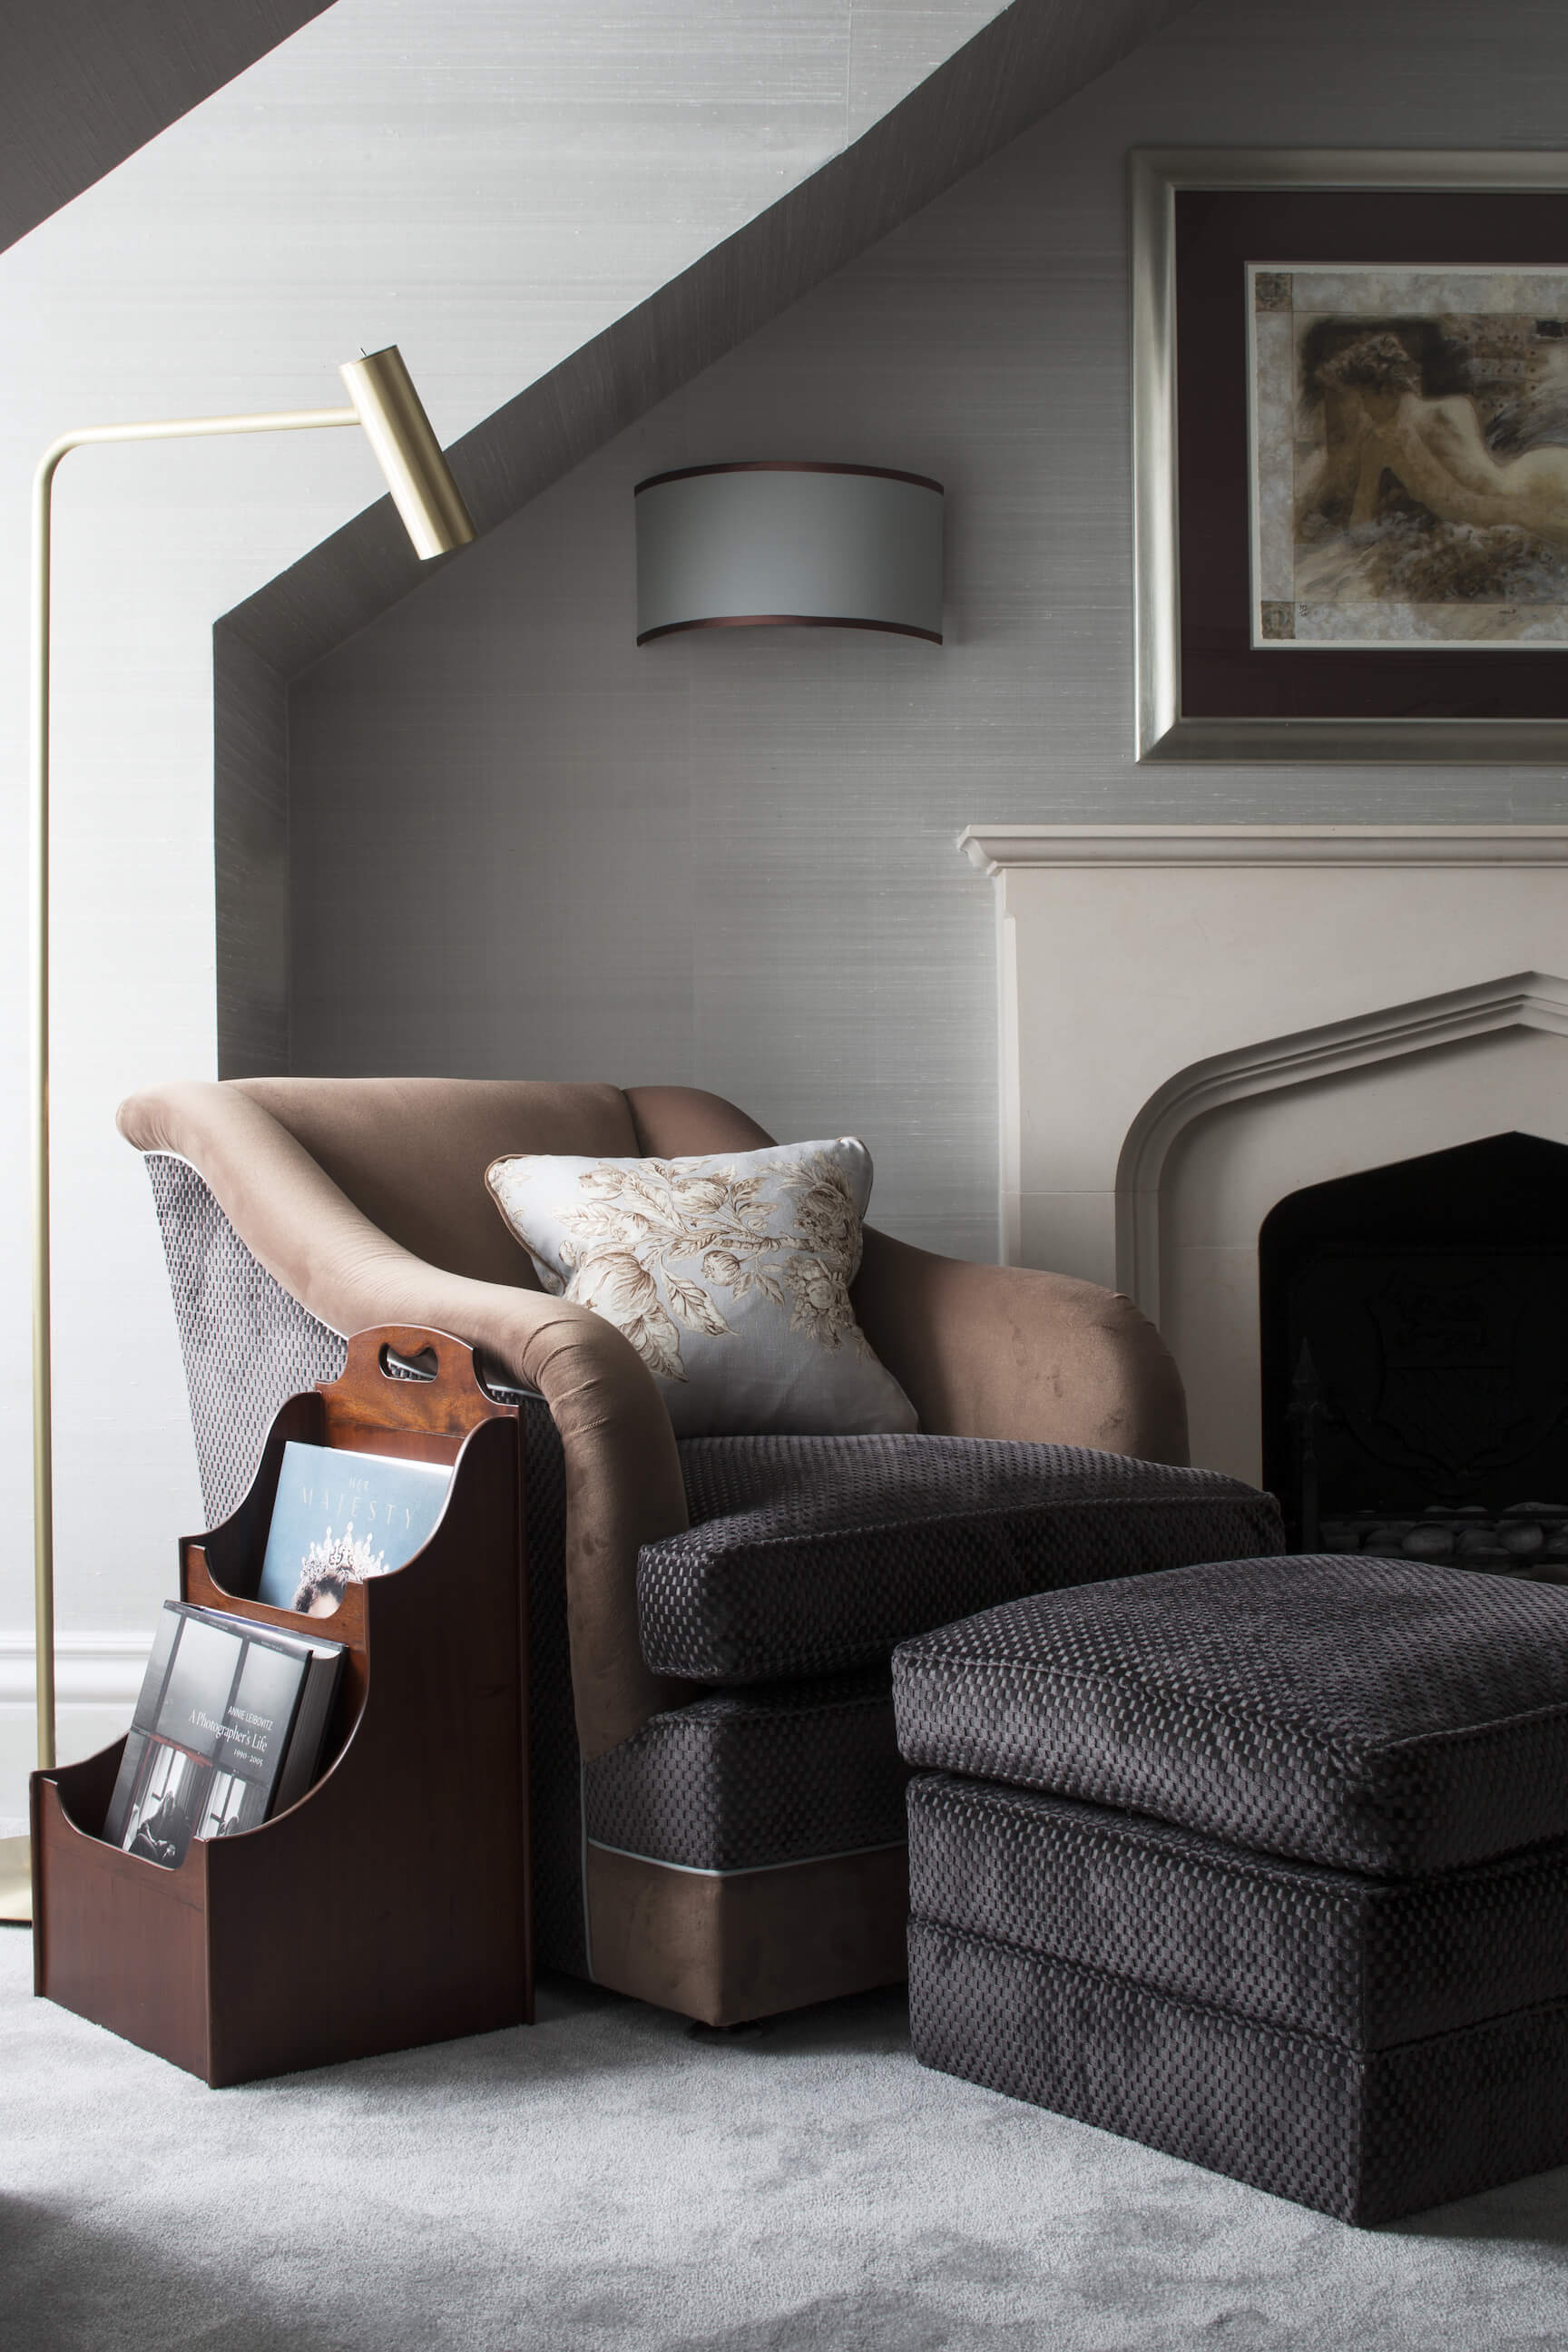 Beside the master bedroom fireplace, we find this rich multi-textured club chair with matching ottoman, below a gold hued floor lamp and half-cylinder sconce.